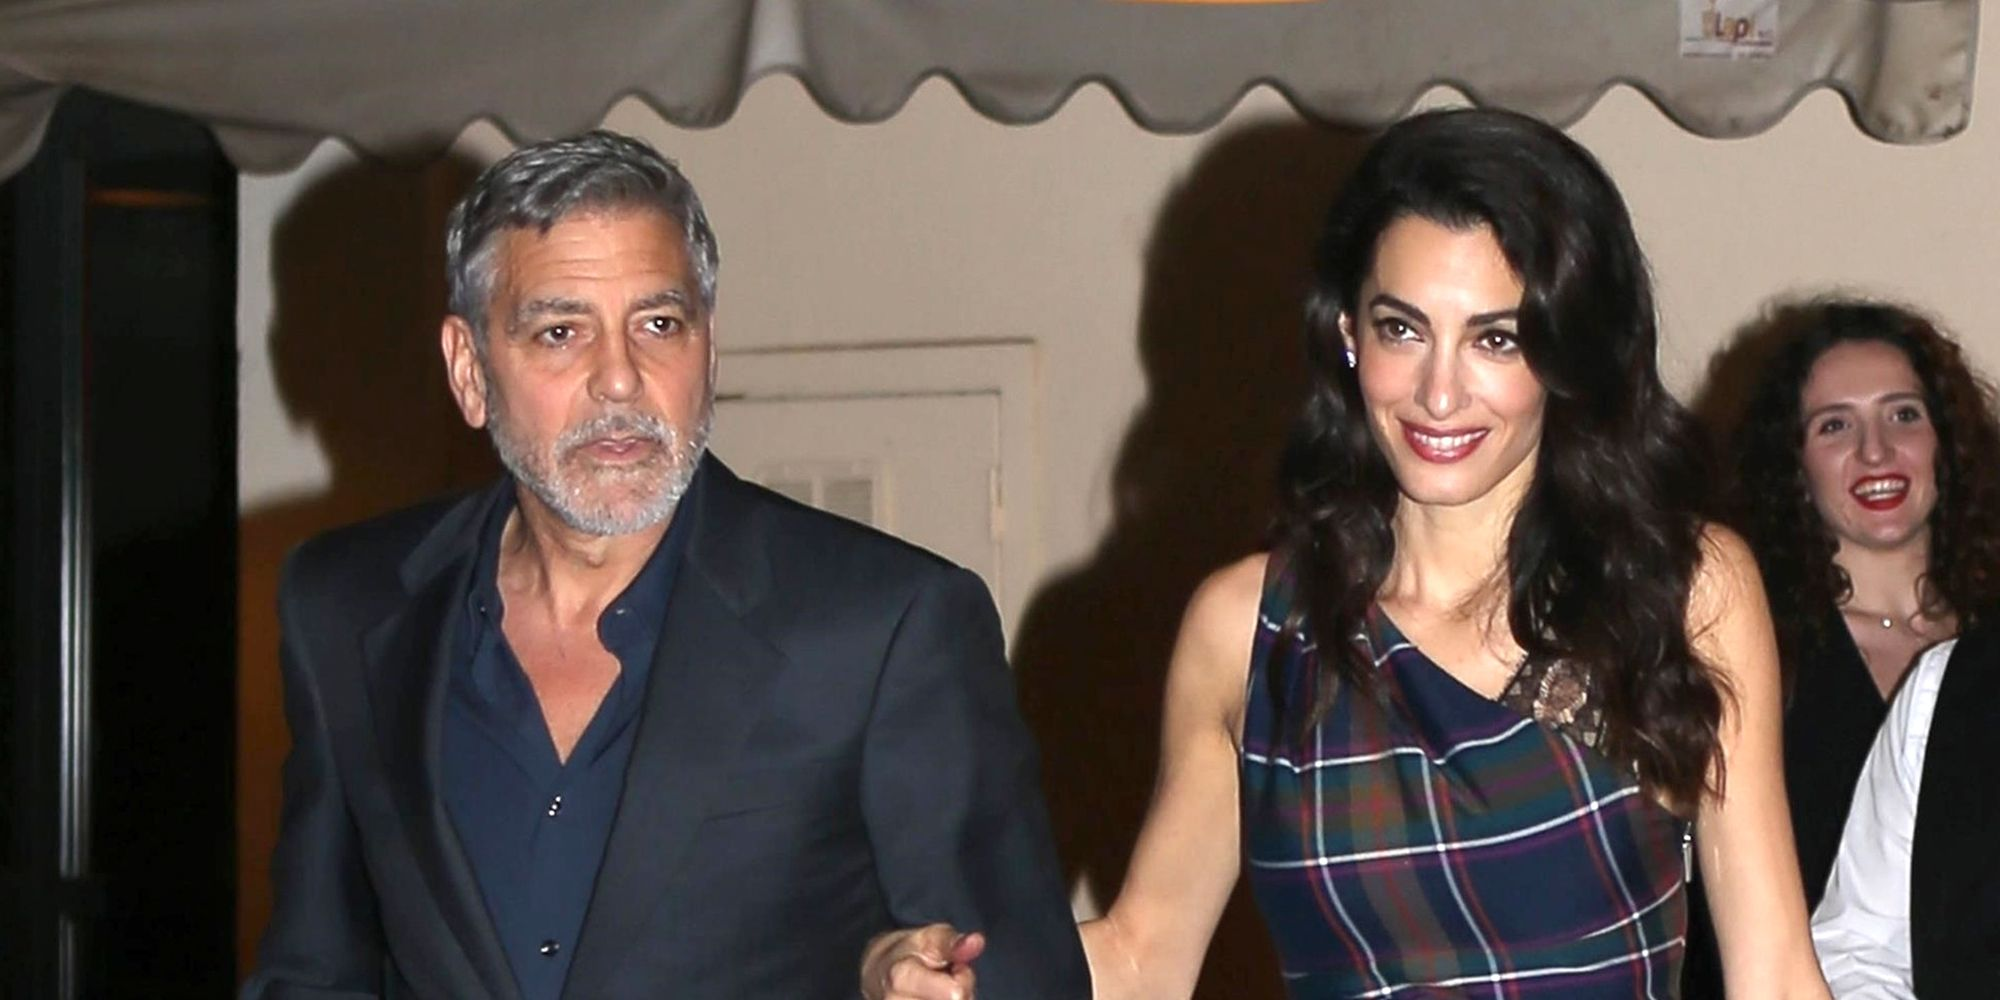 George Clooney and his wife Amal Clooney   cut sophisticated figures when in Rome!